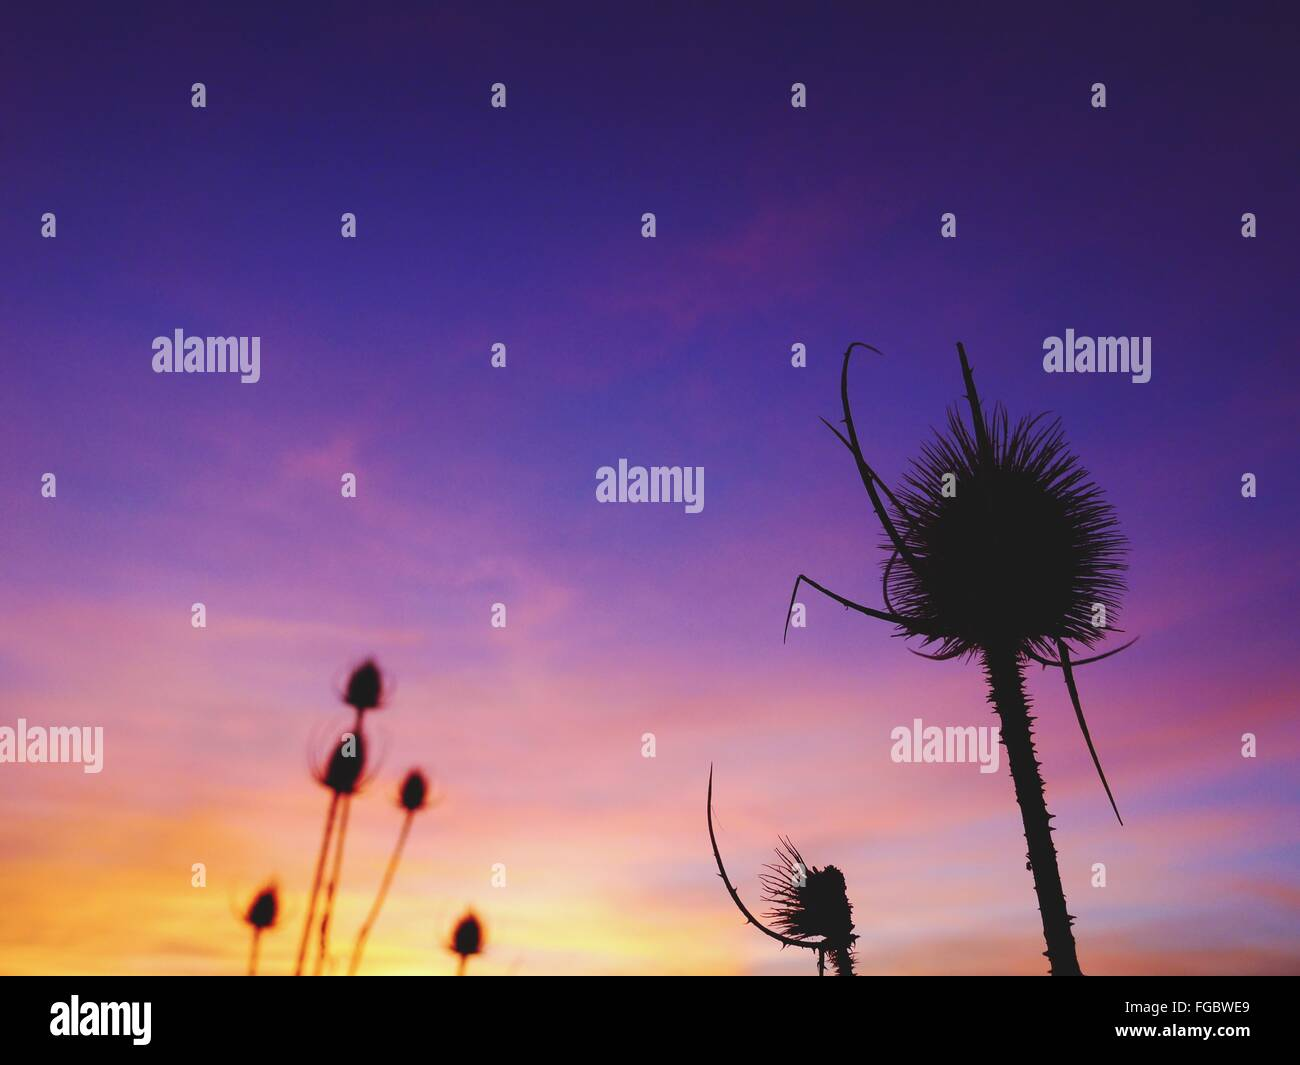 Low Angle View Of Dry Silhouette Thistle Against Sky At Sunset - Stock Image